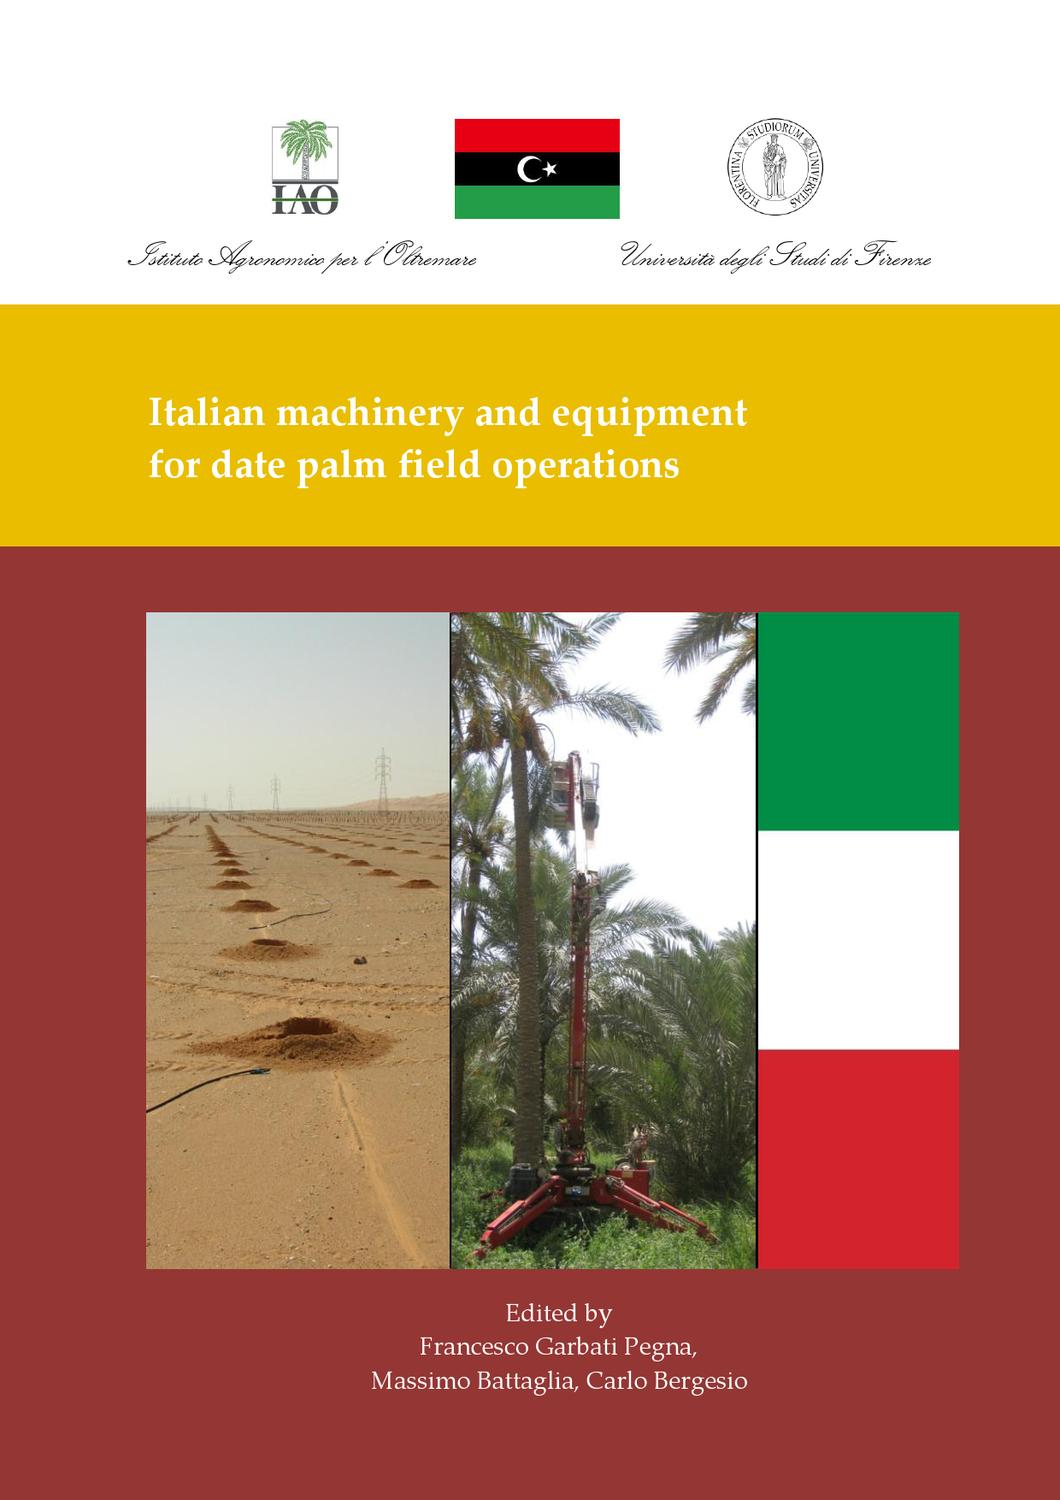 Italian machinery and equipment for date palm field